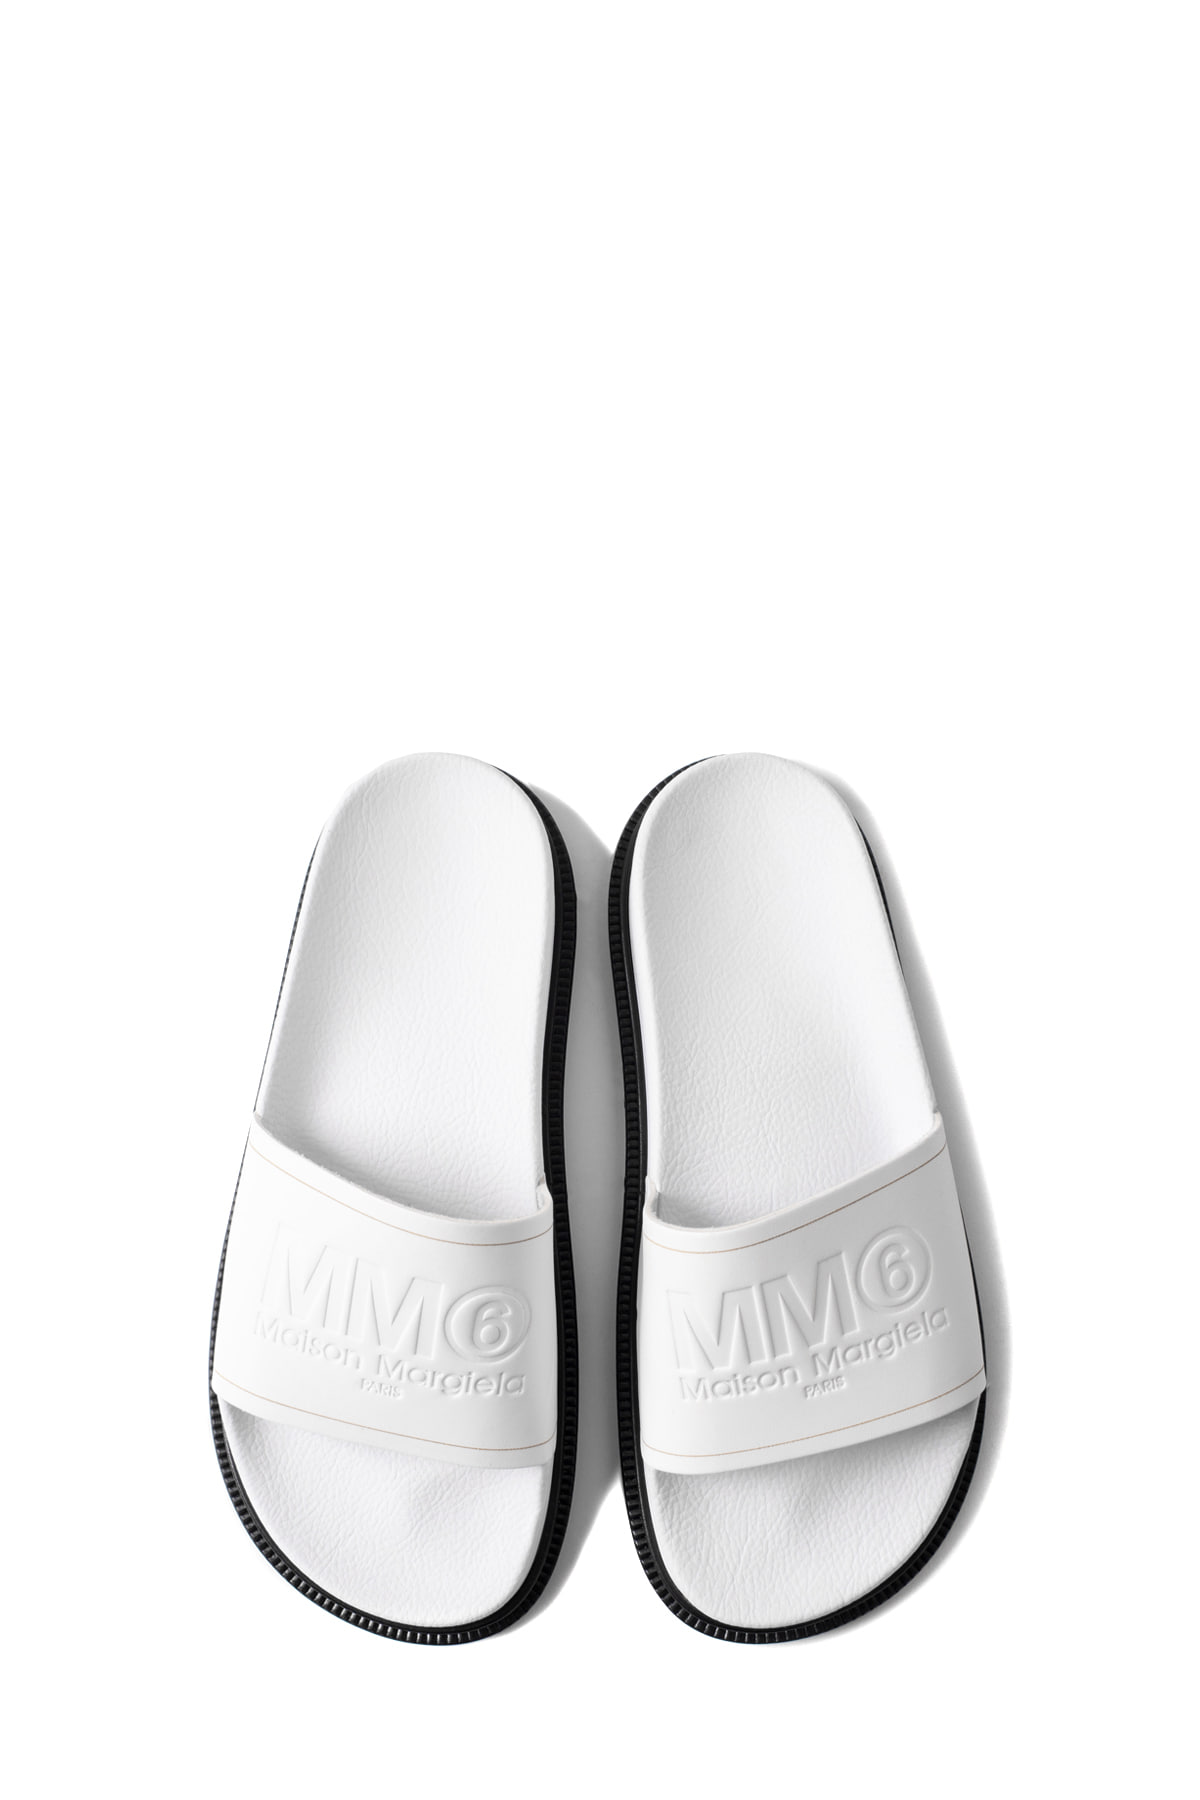 MM6 Maison Margiela : Slipper (White)